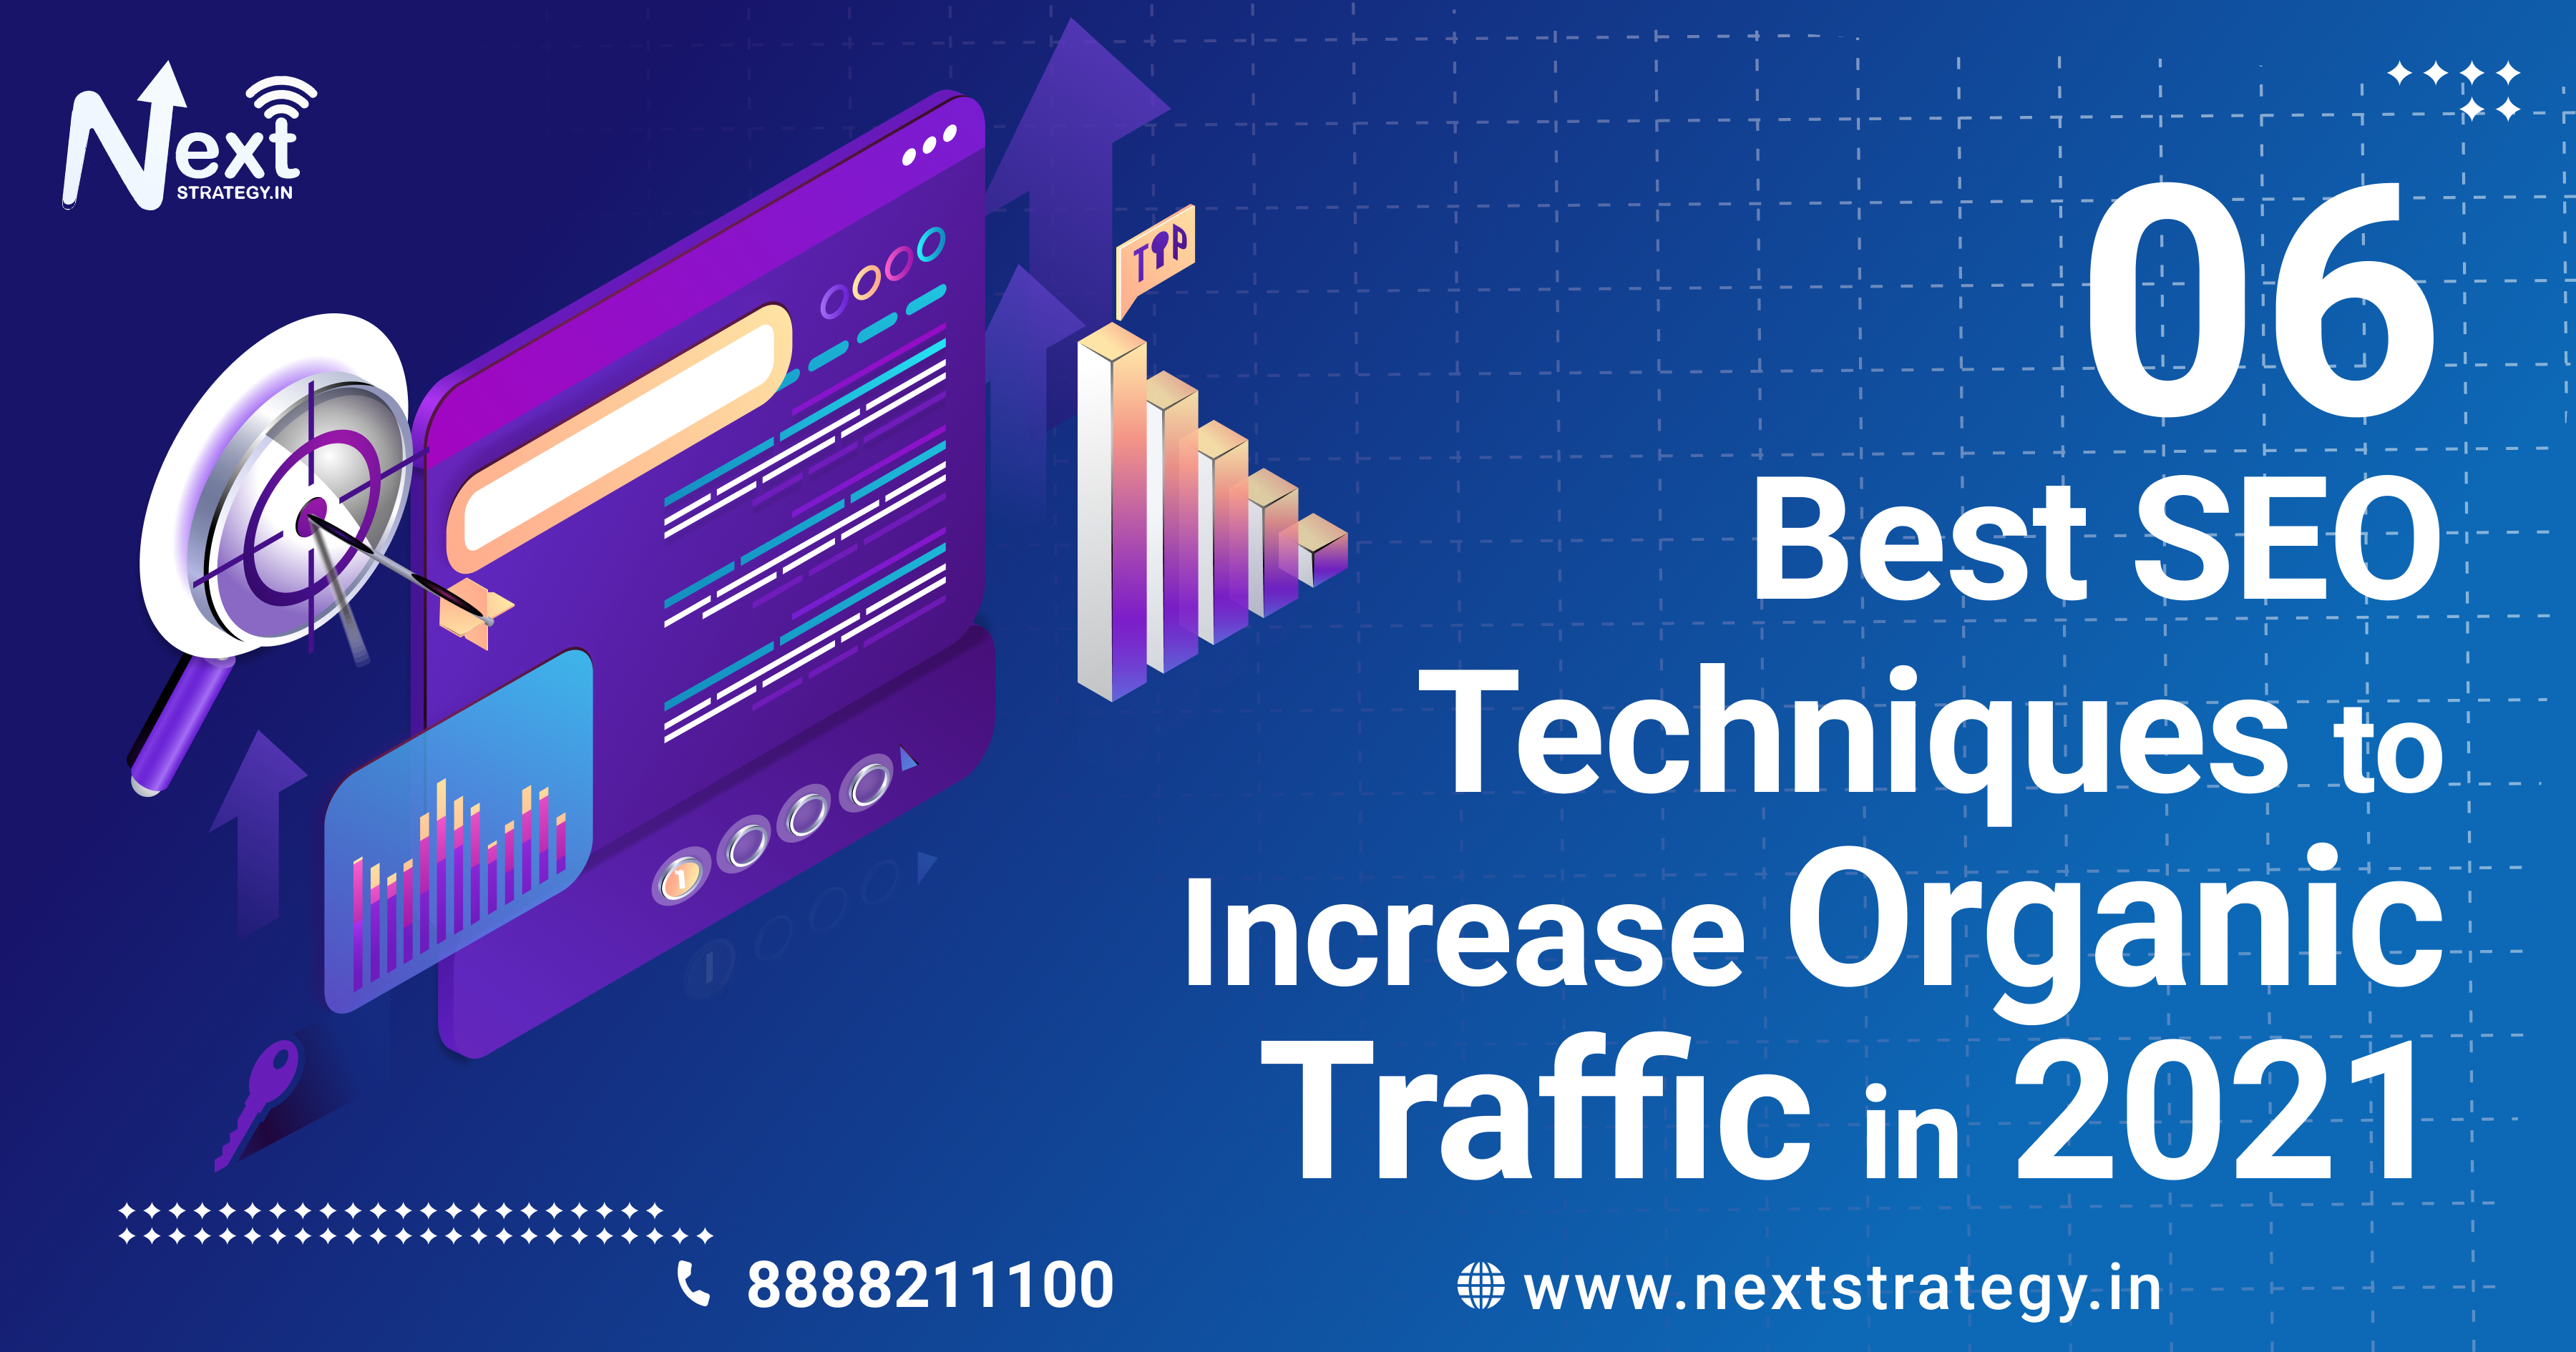 6-Best-SEO-Technique-to-increase-organic-traffic-in-2021 - Nextstartegy.in